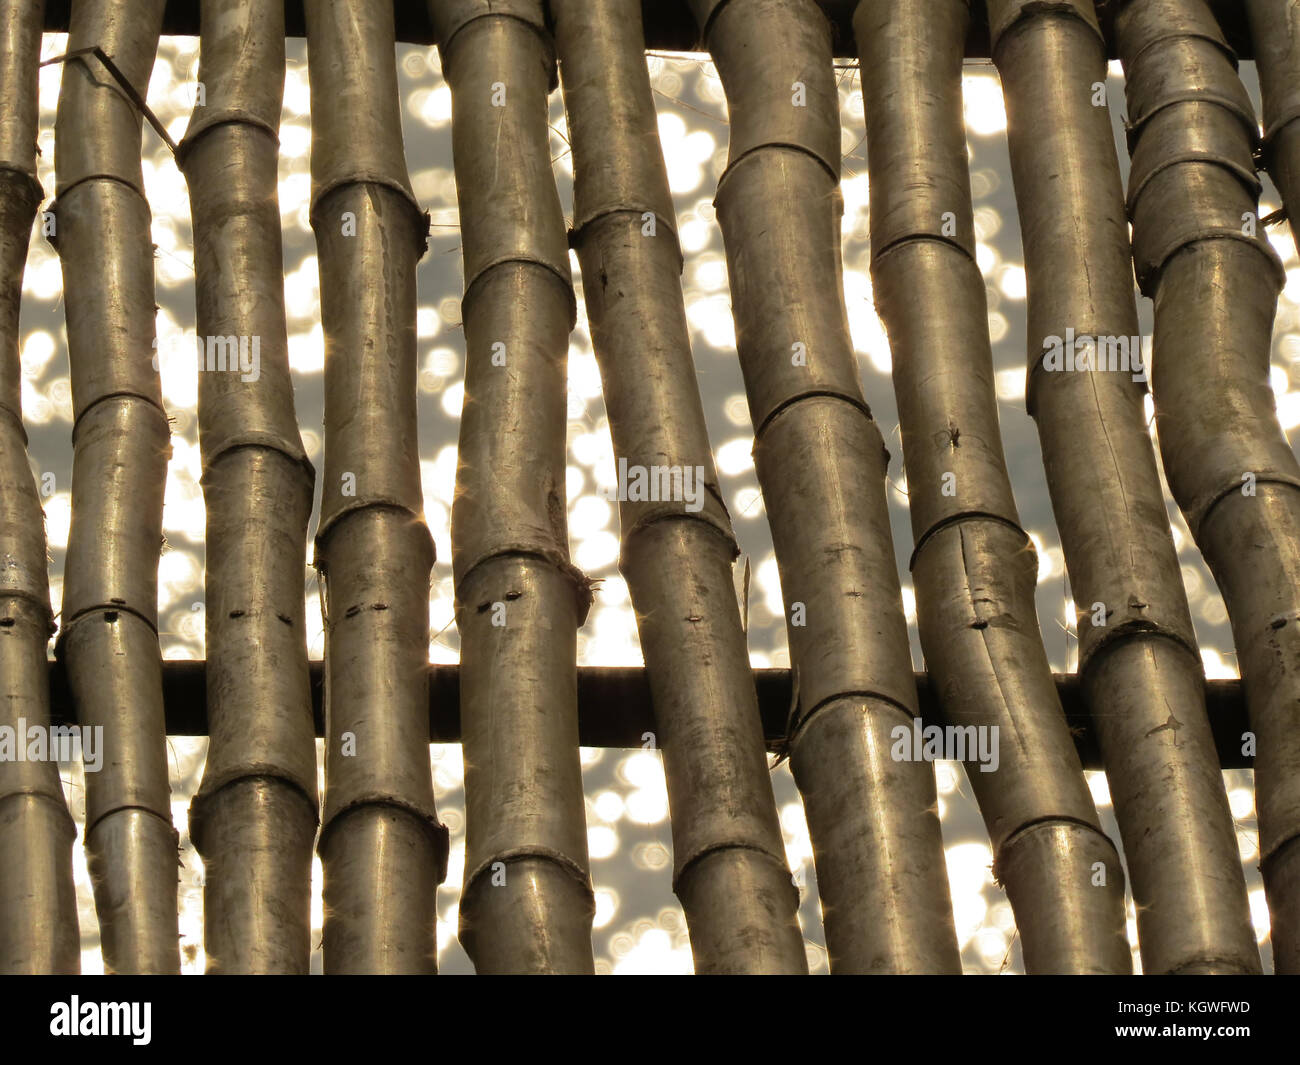 A background of golden bamboos over the backdrop of sparkling water. - Stock Image